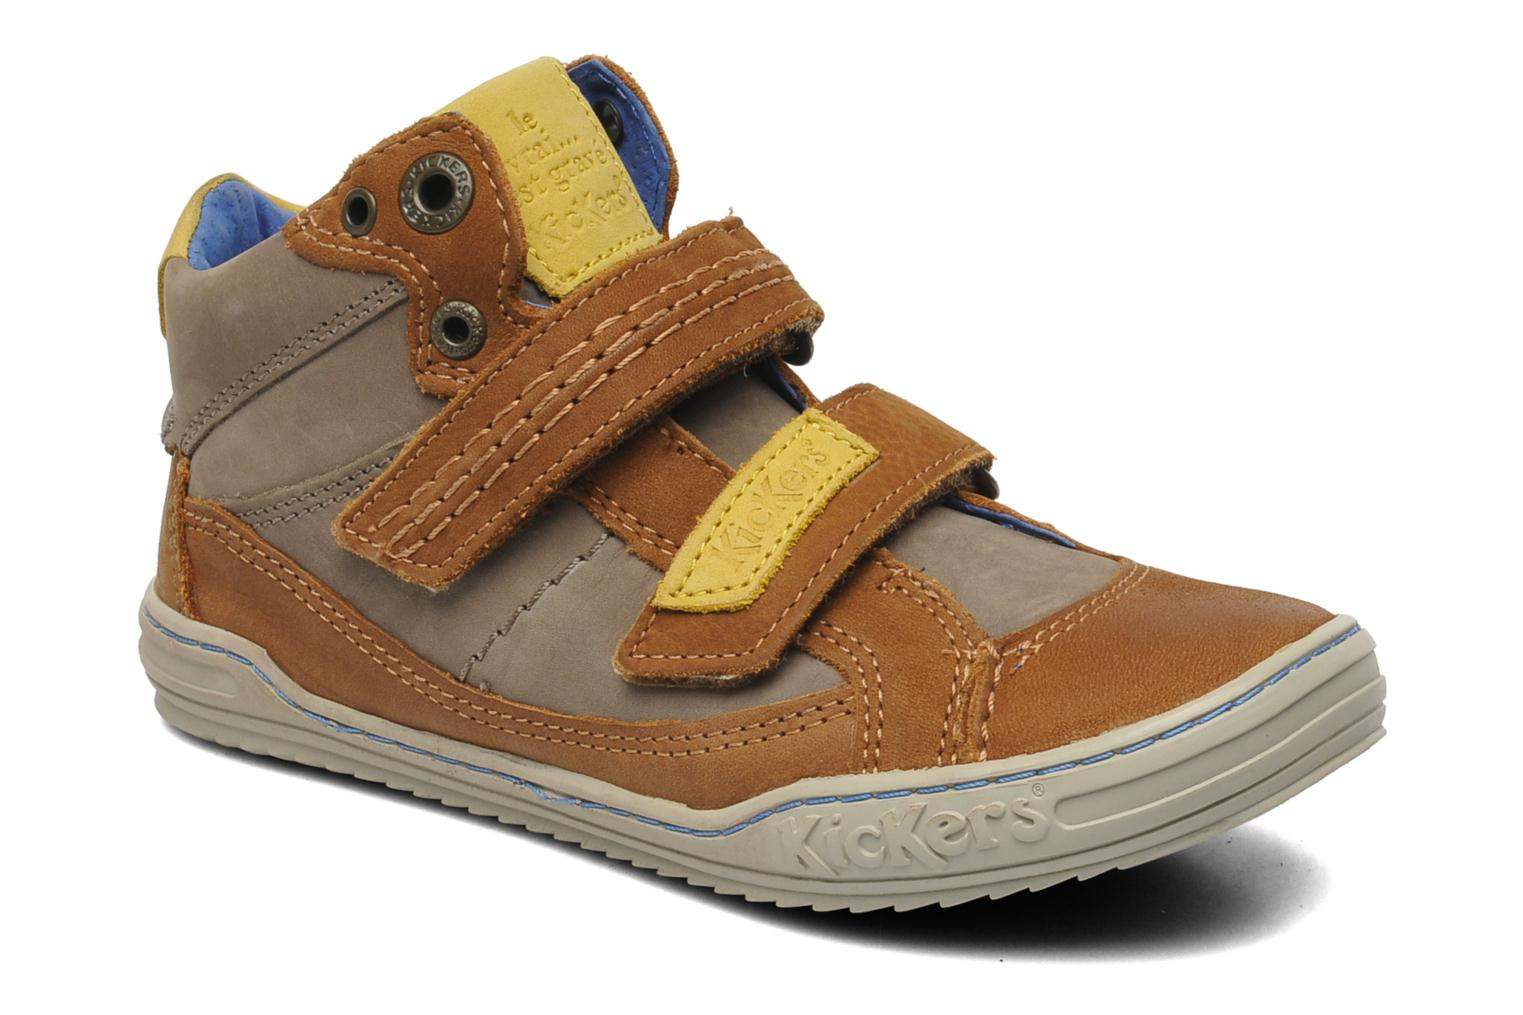 Sneakers JERONIMO by Kickers